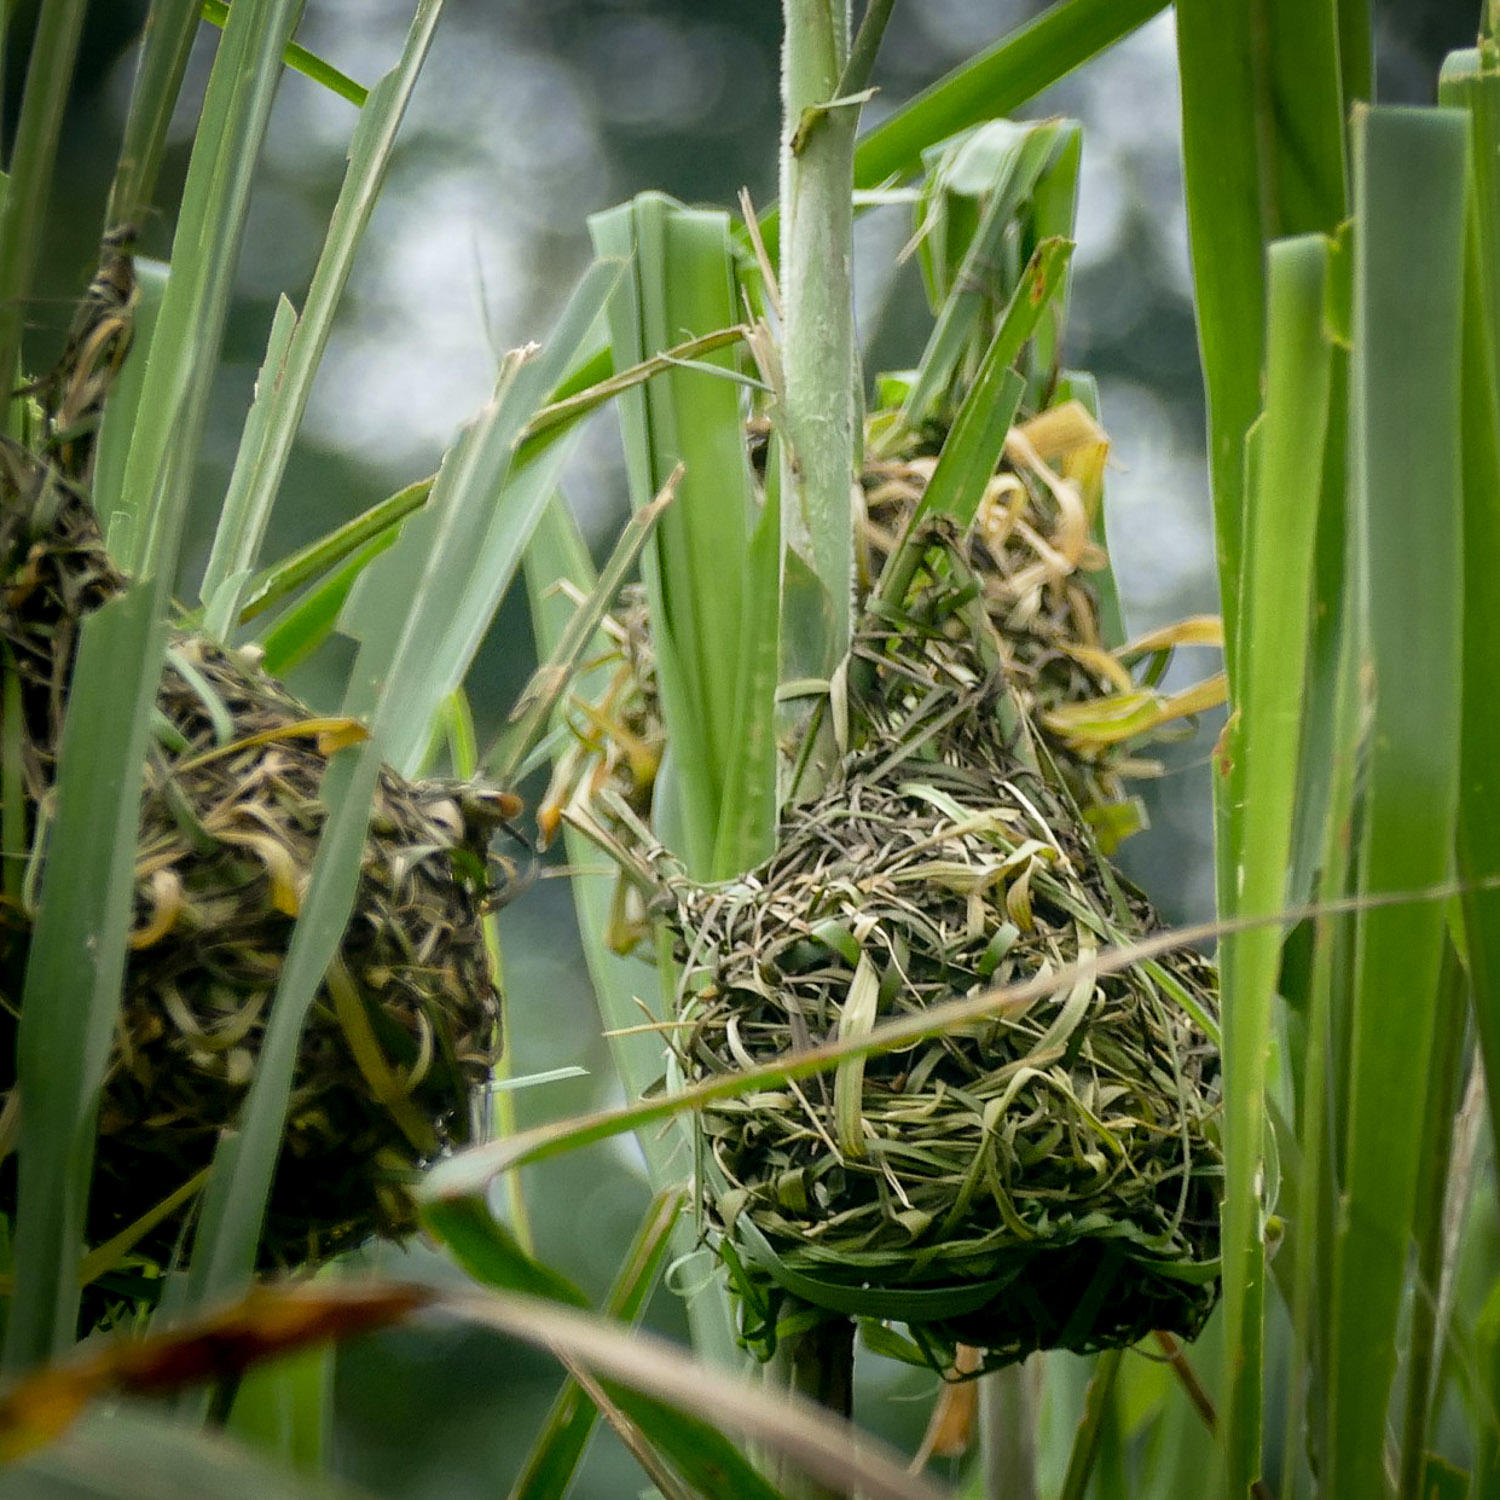 Village Weaver nests are one of the most conspicuous signs of bird activity in Cameroon. Noah Strycker